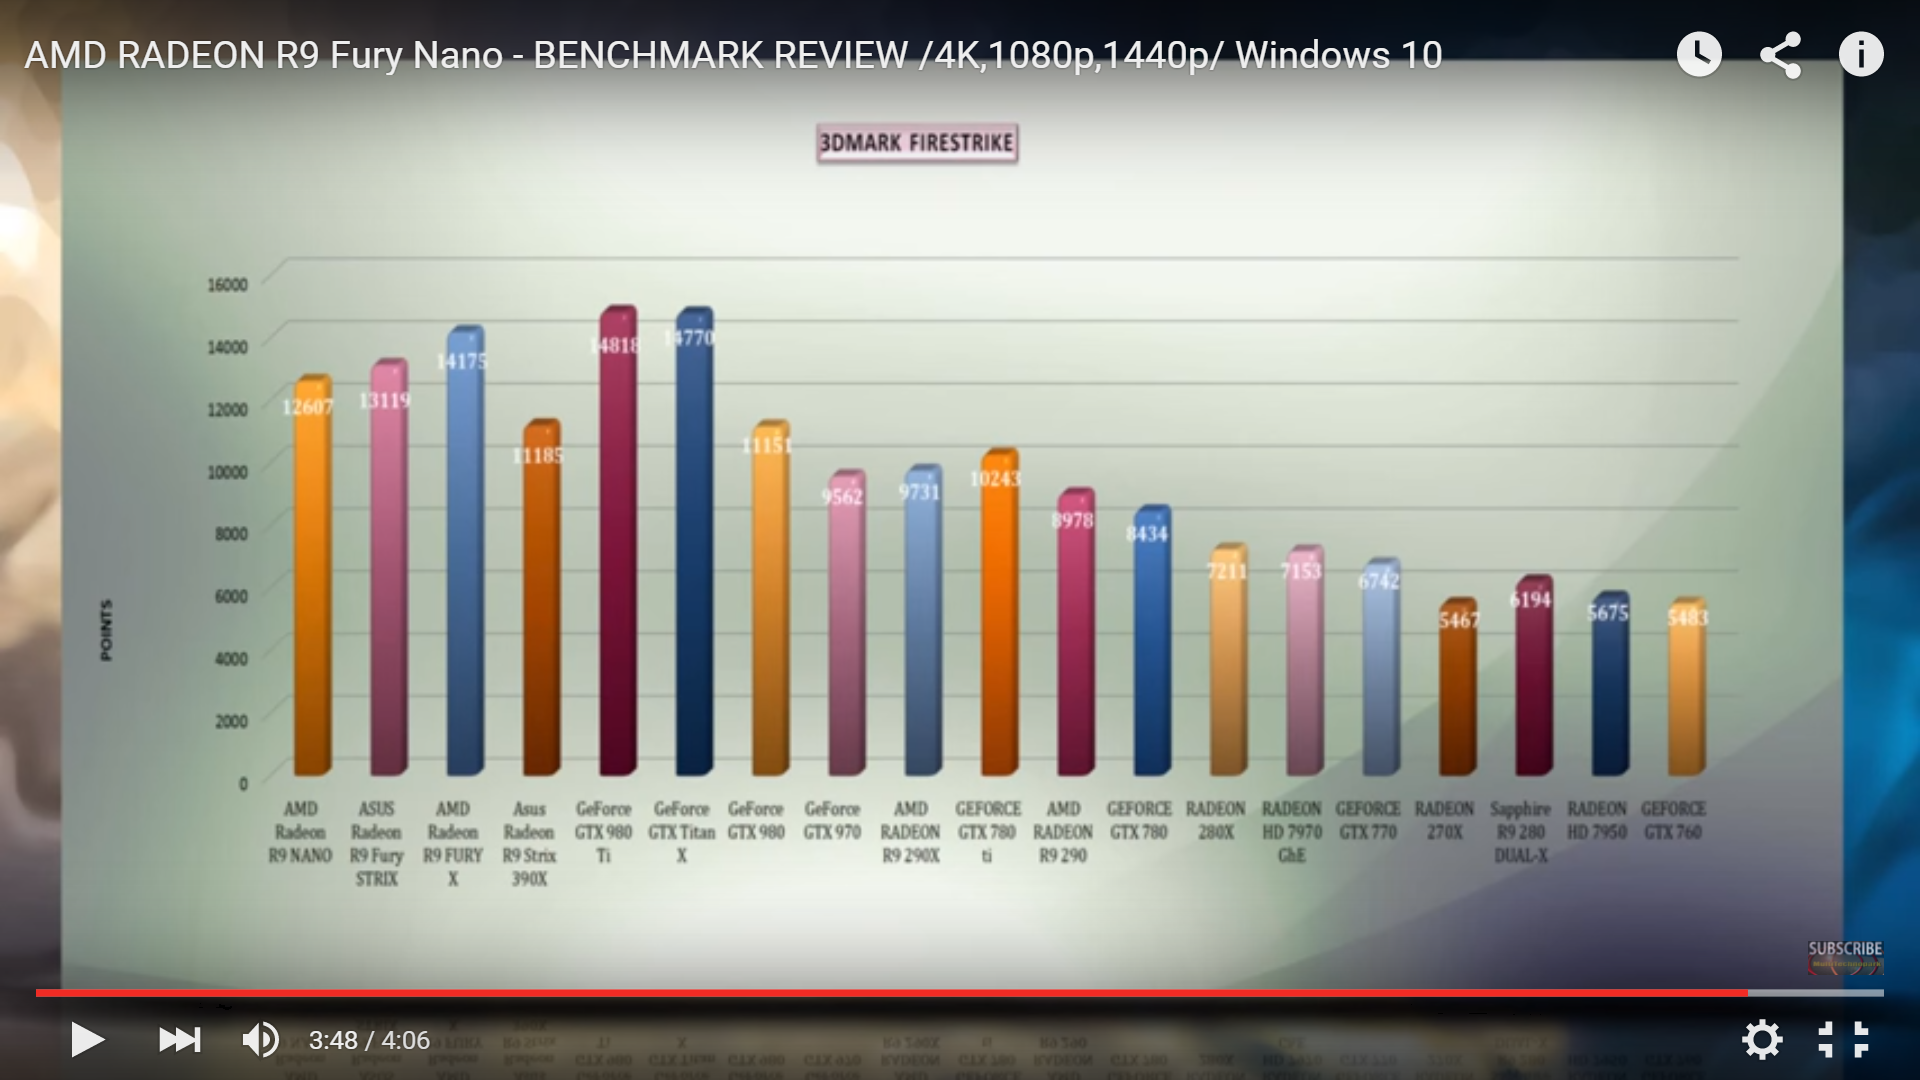 Windows 10 Gaming Benchmarks – The Results from 3DMark Tests